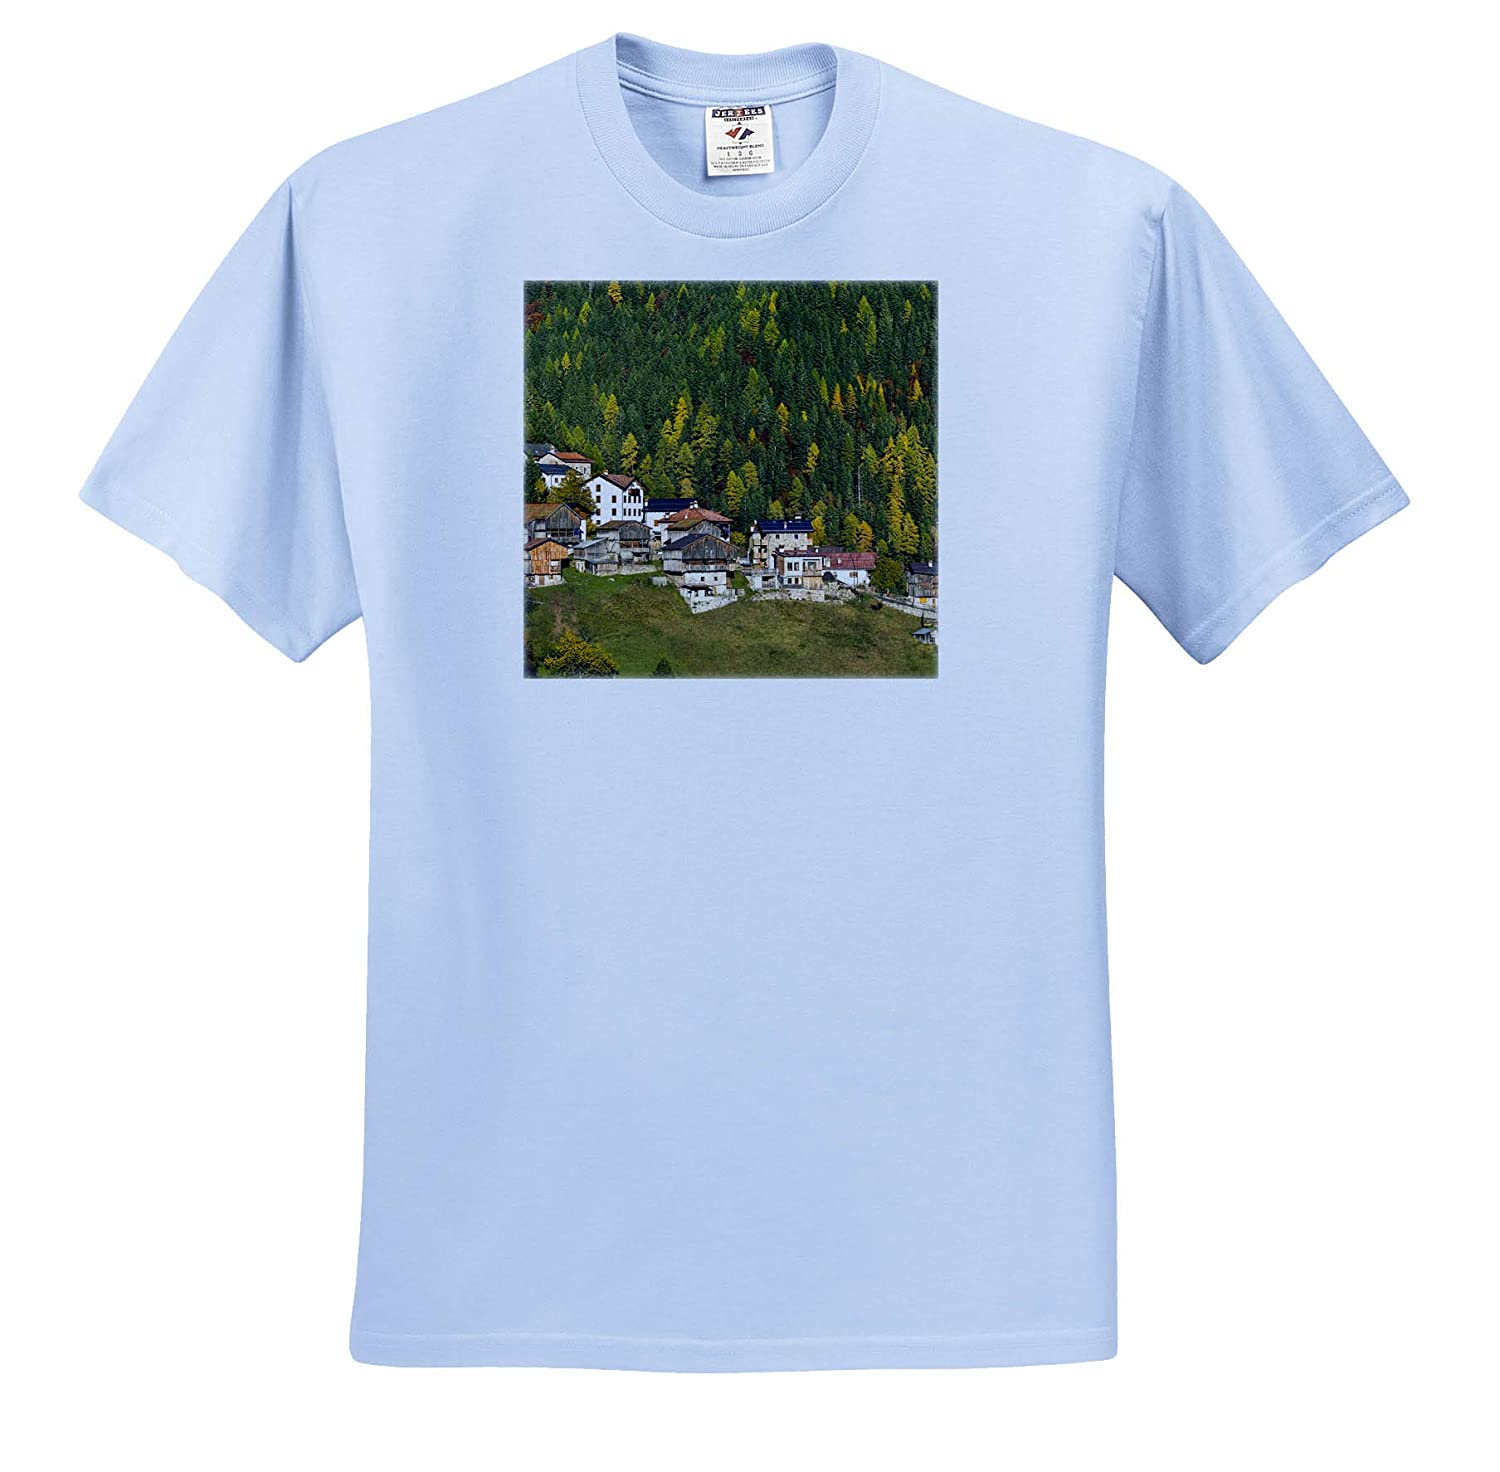 3dRose Danita Delimont Italy ts/_313727 San Tomaso Agordino in The Dolomites of The Veneto Adult T-Shirt XL Italy